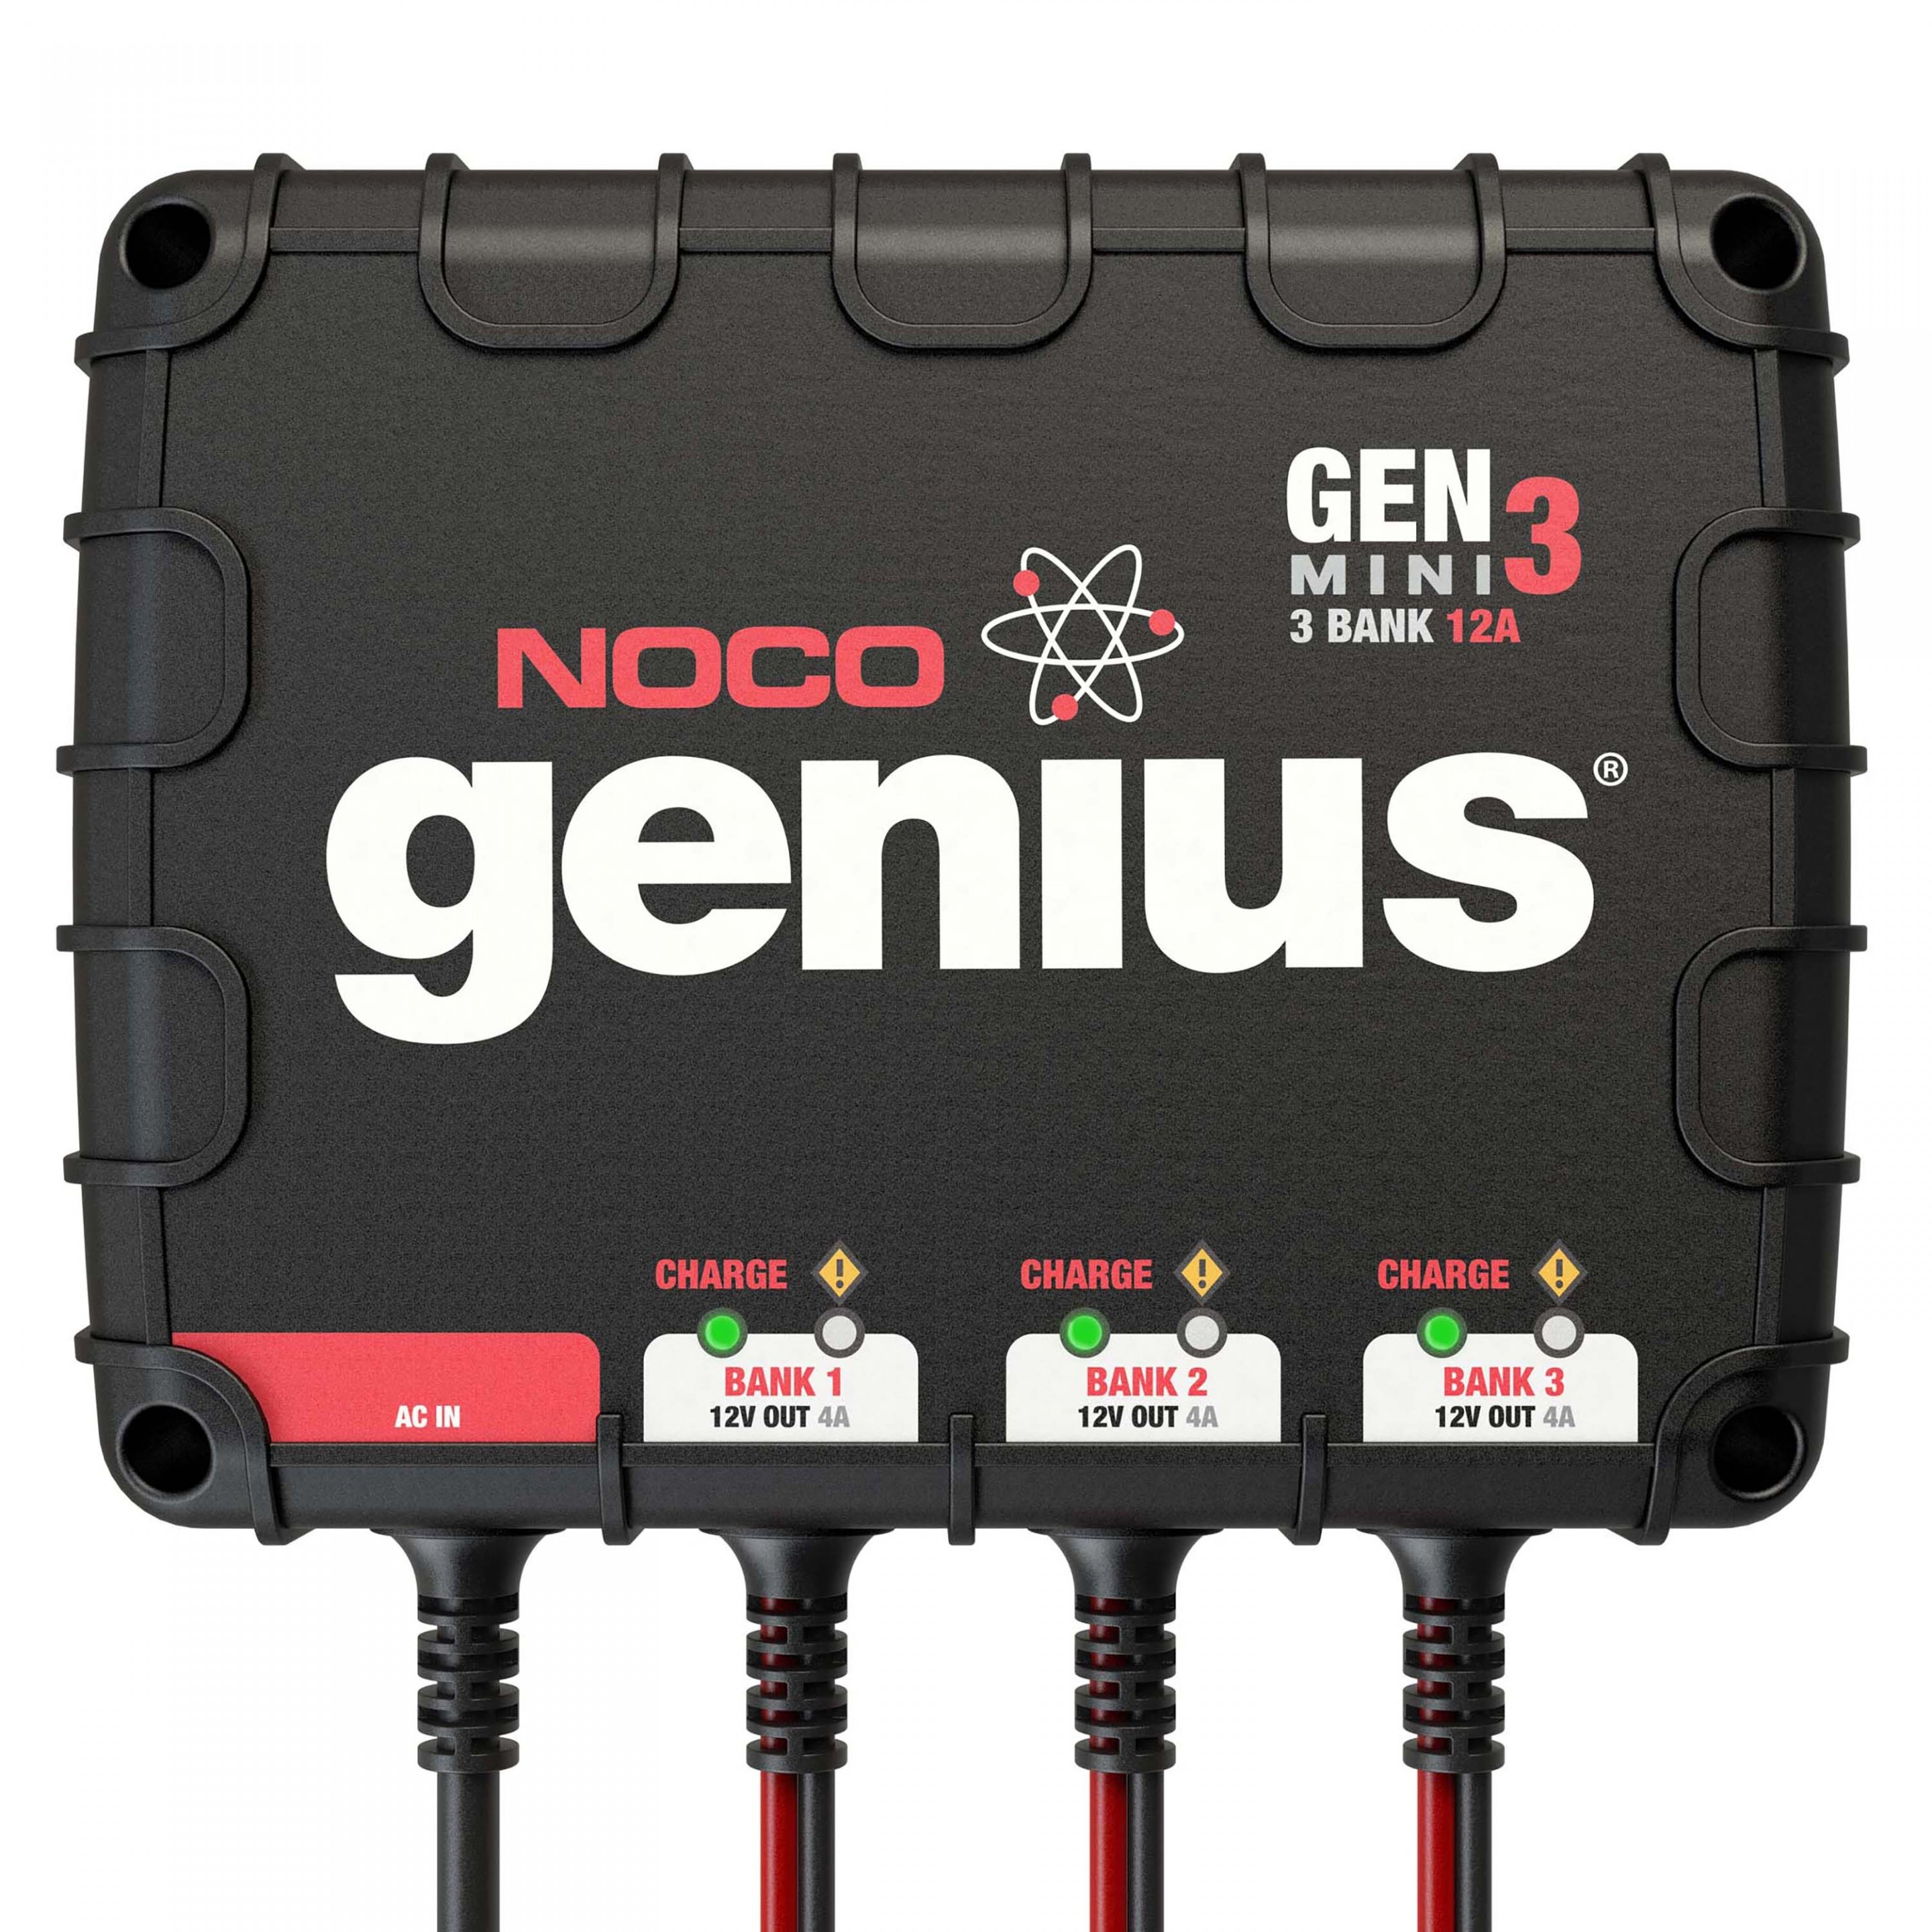 NOCO Genius GENM3 3-Bank 12 Amp UltraSafe On-Board Battery Charger